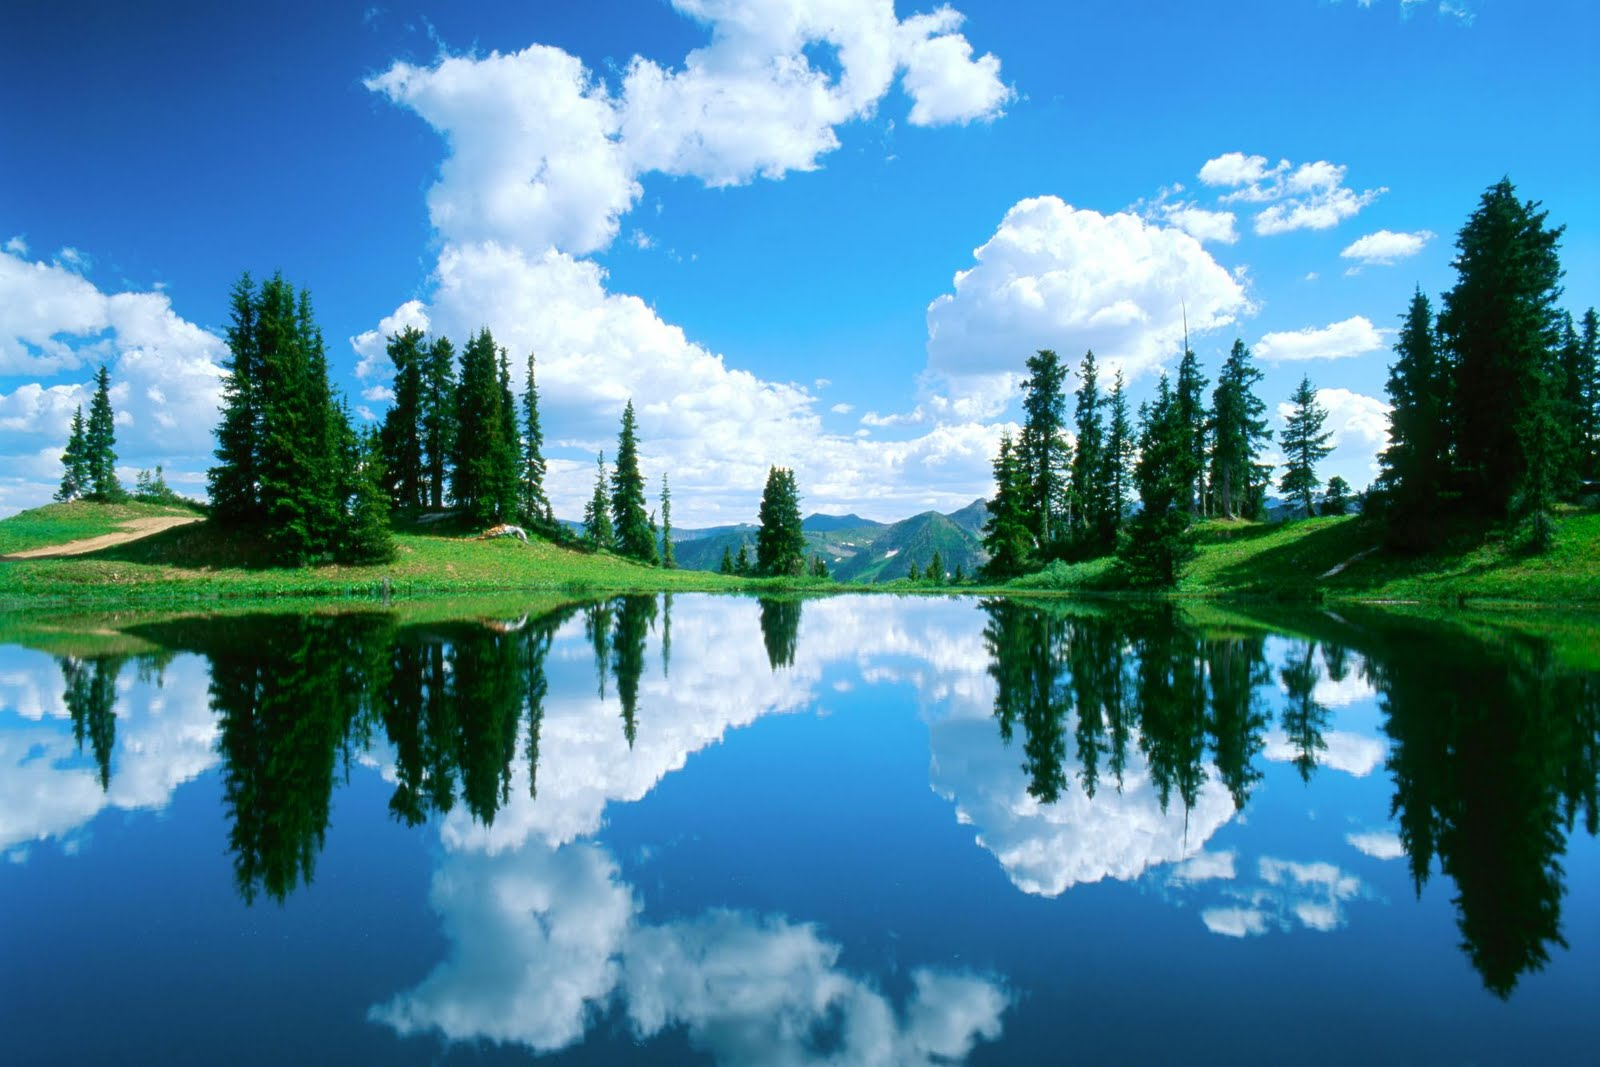 reflections on water stunning hd nature wallpapers